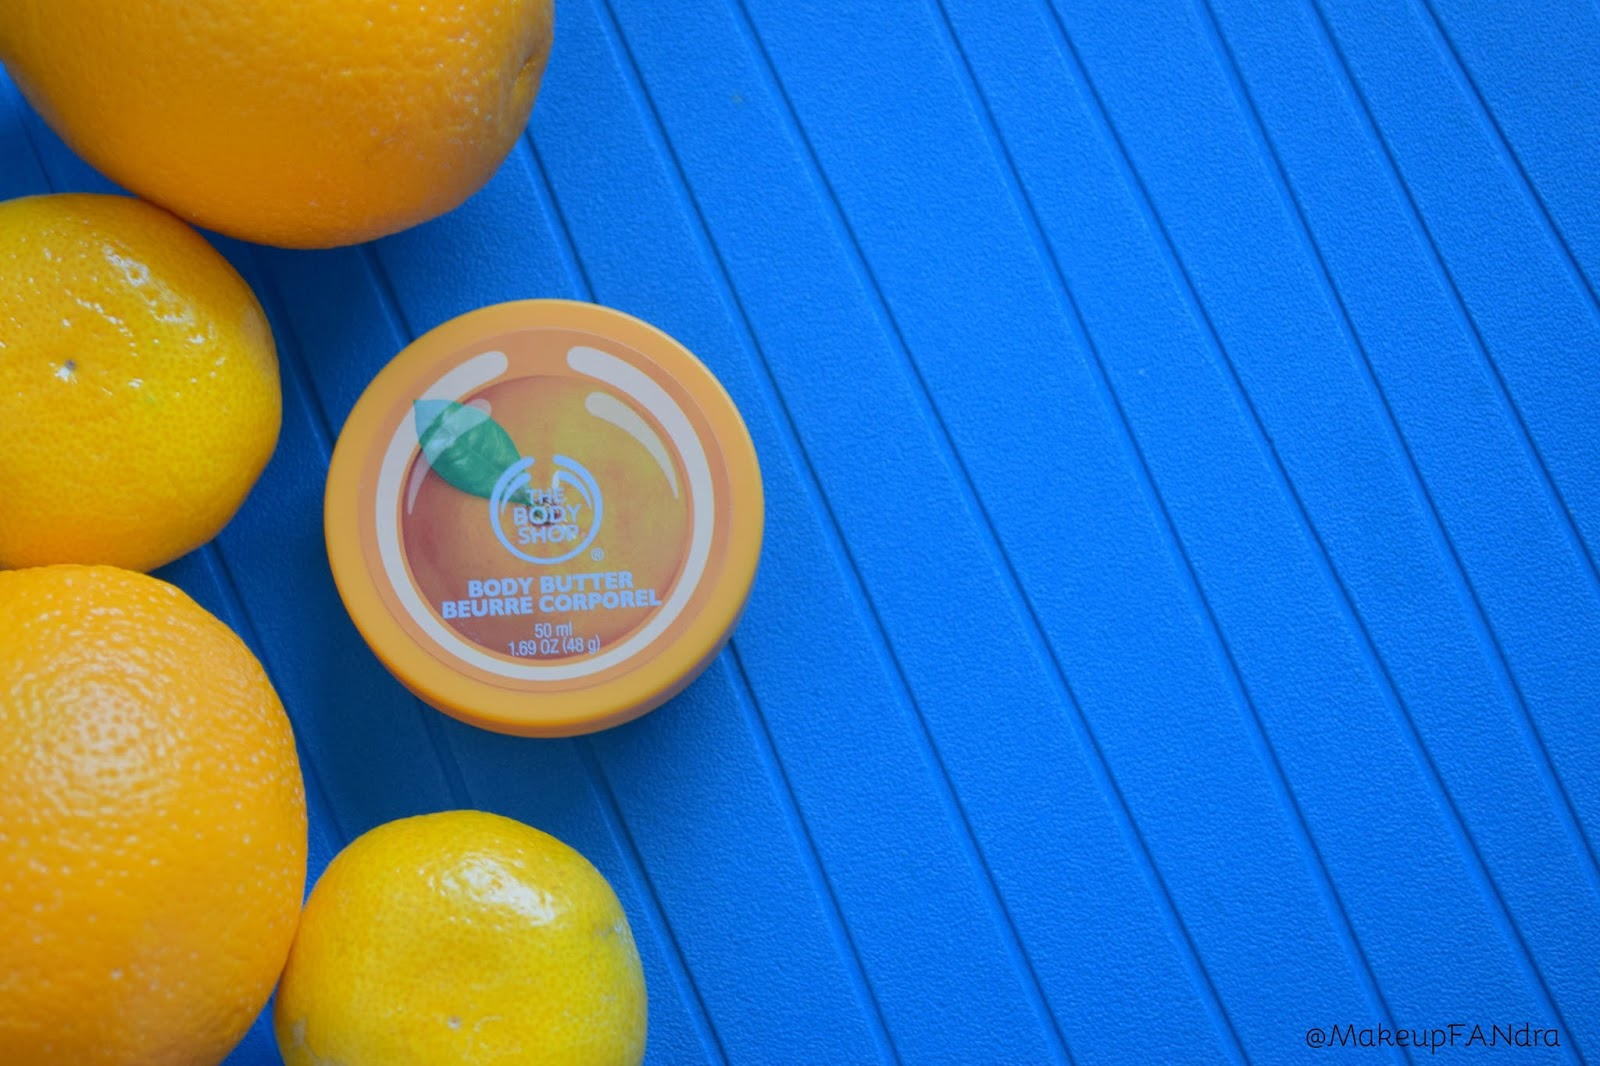 The body shop body butter satsuma